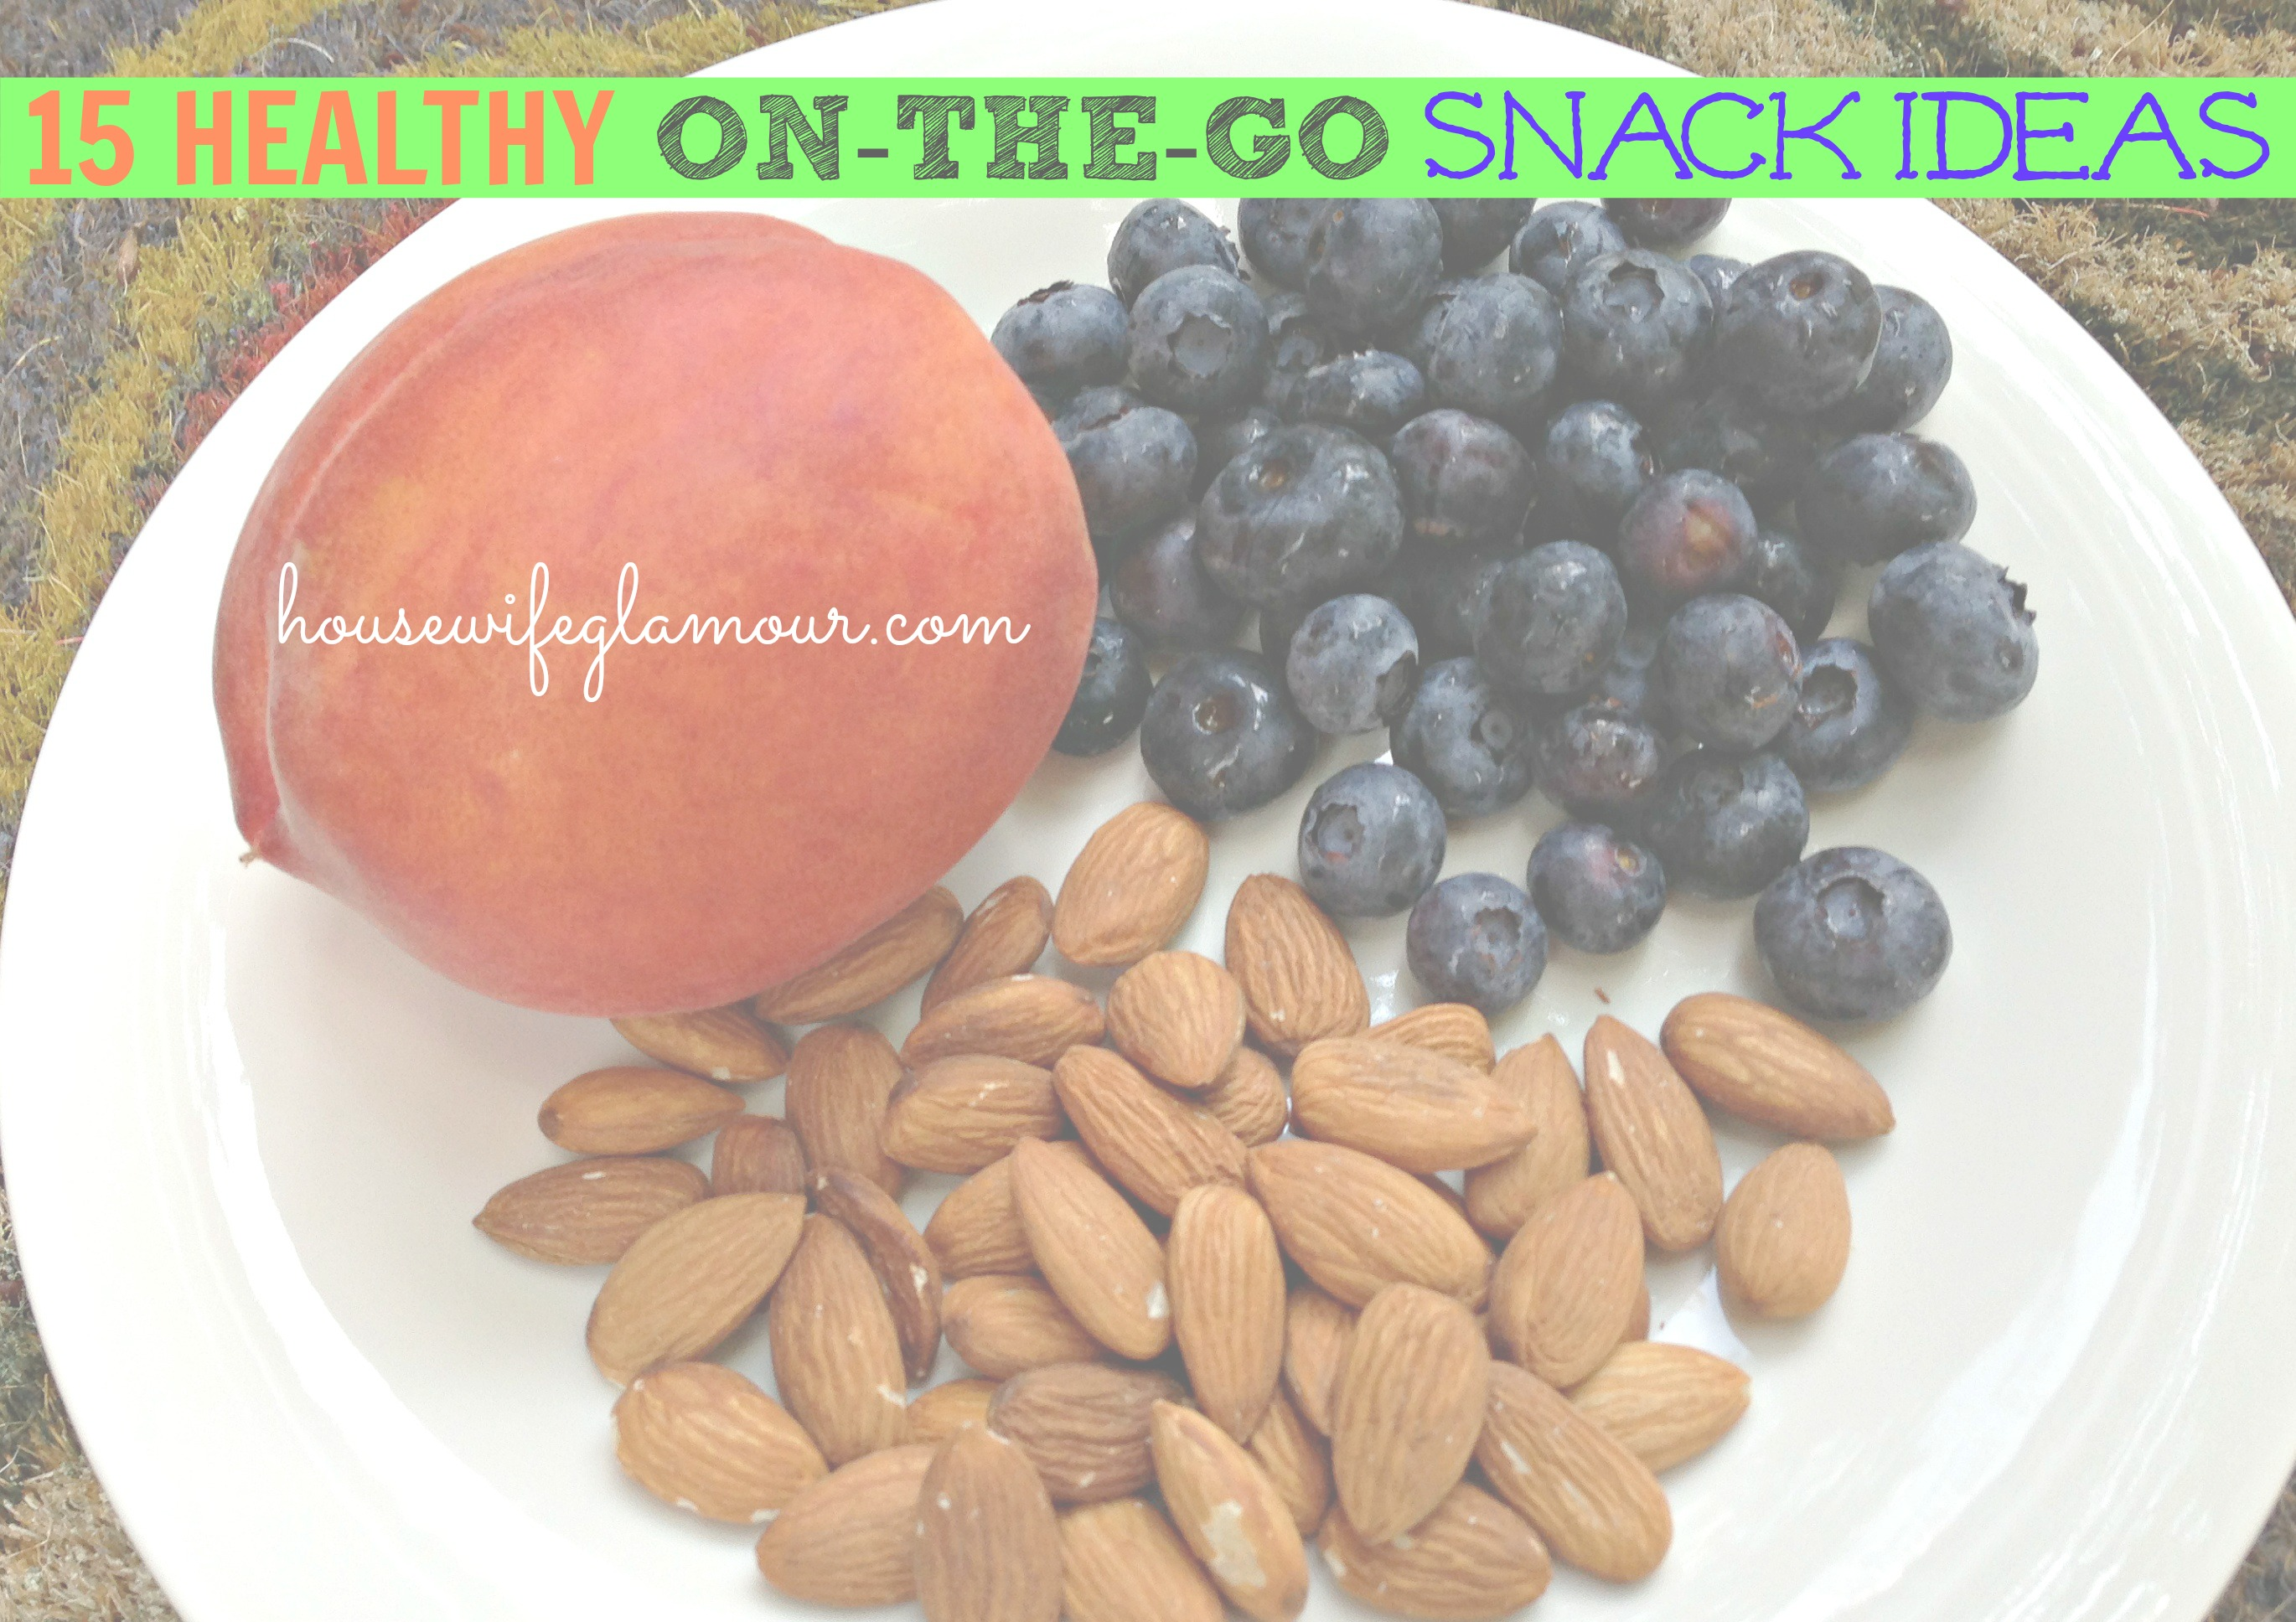 15 Healthy on-the-go snack ideas